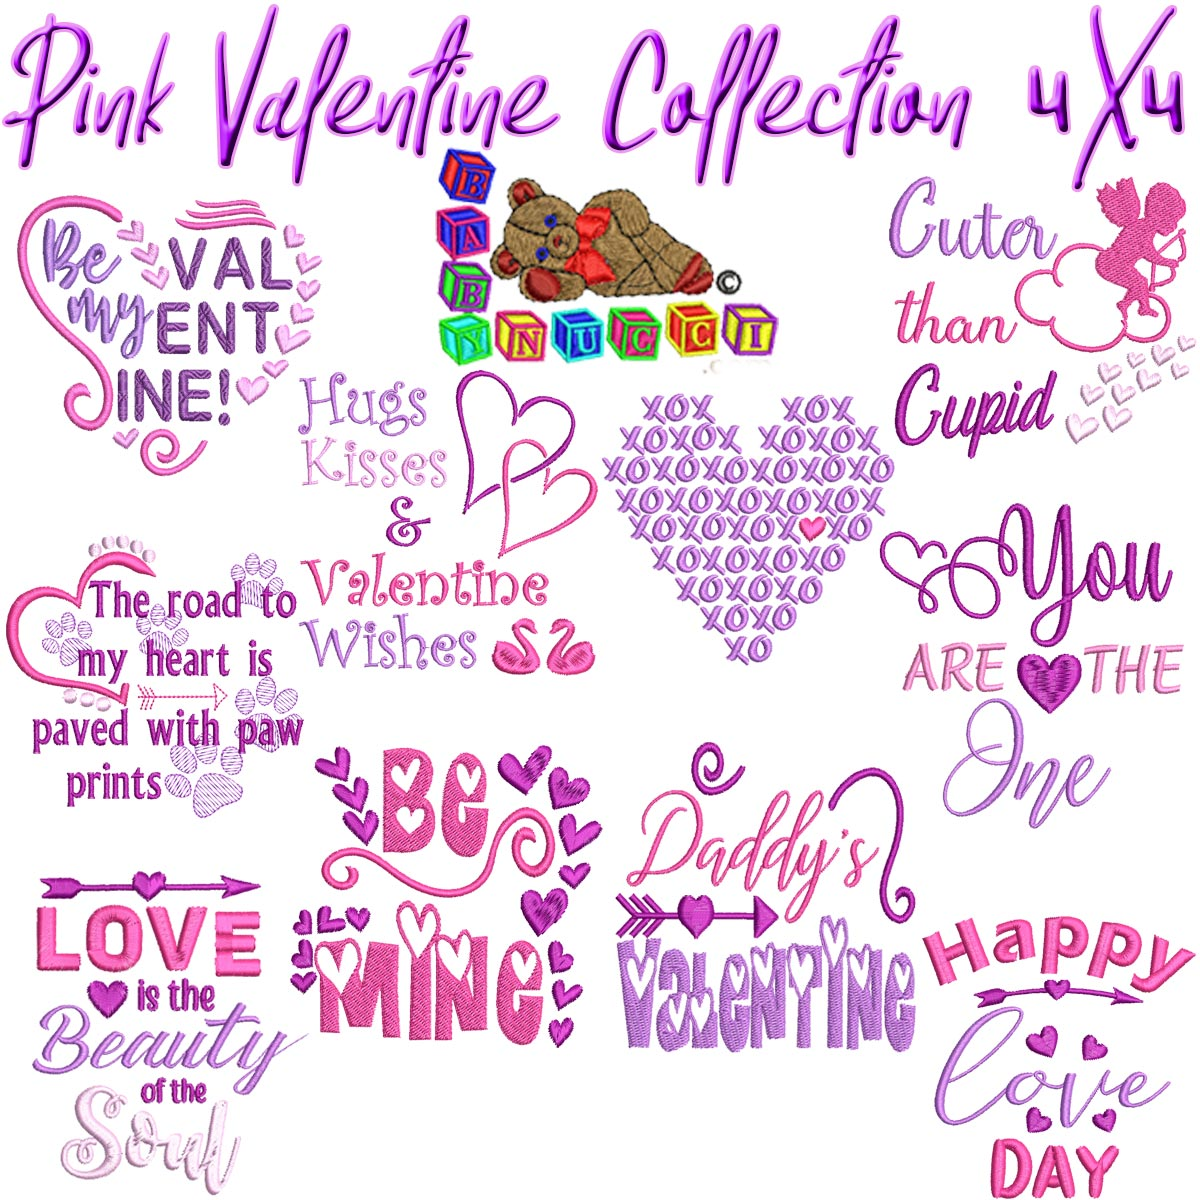 Pink Valentine Collection